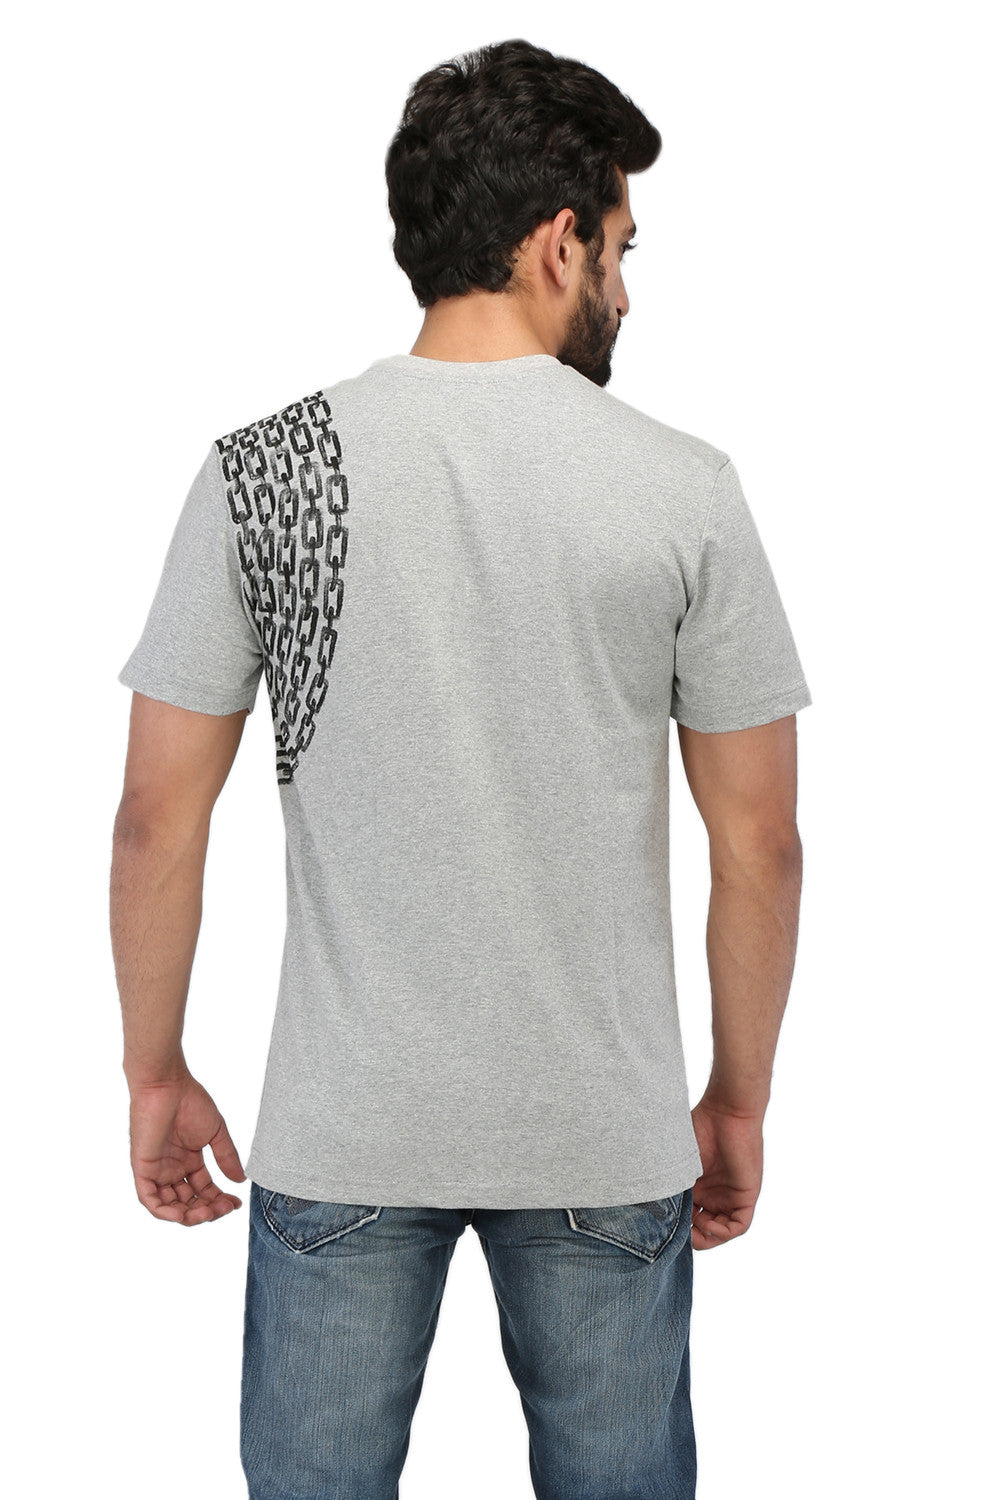 Hand-painted Minimalist Chain Grey T-shirt - Rang Rage  - 2